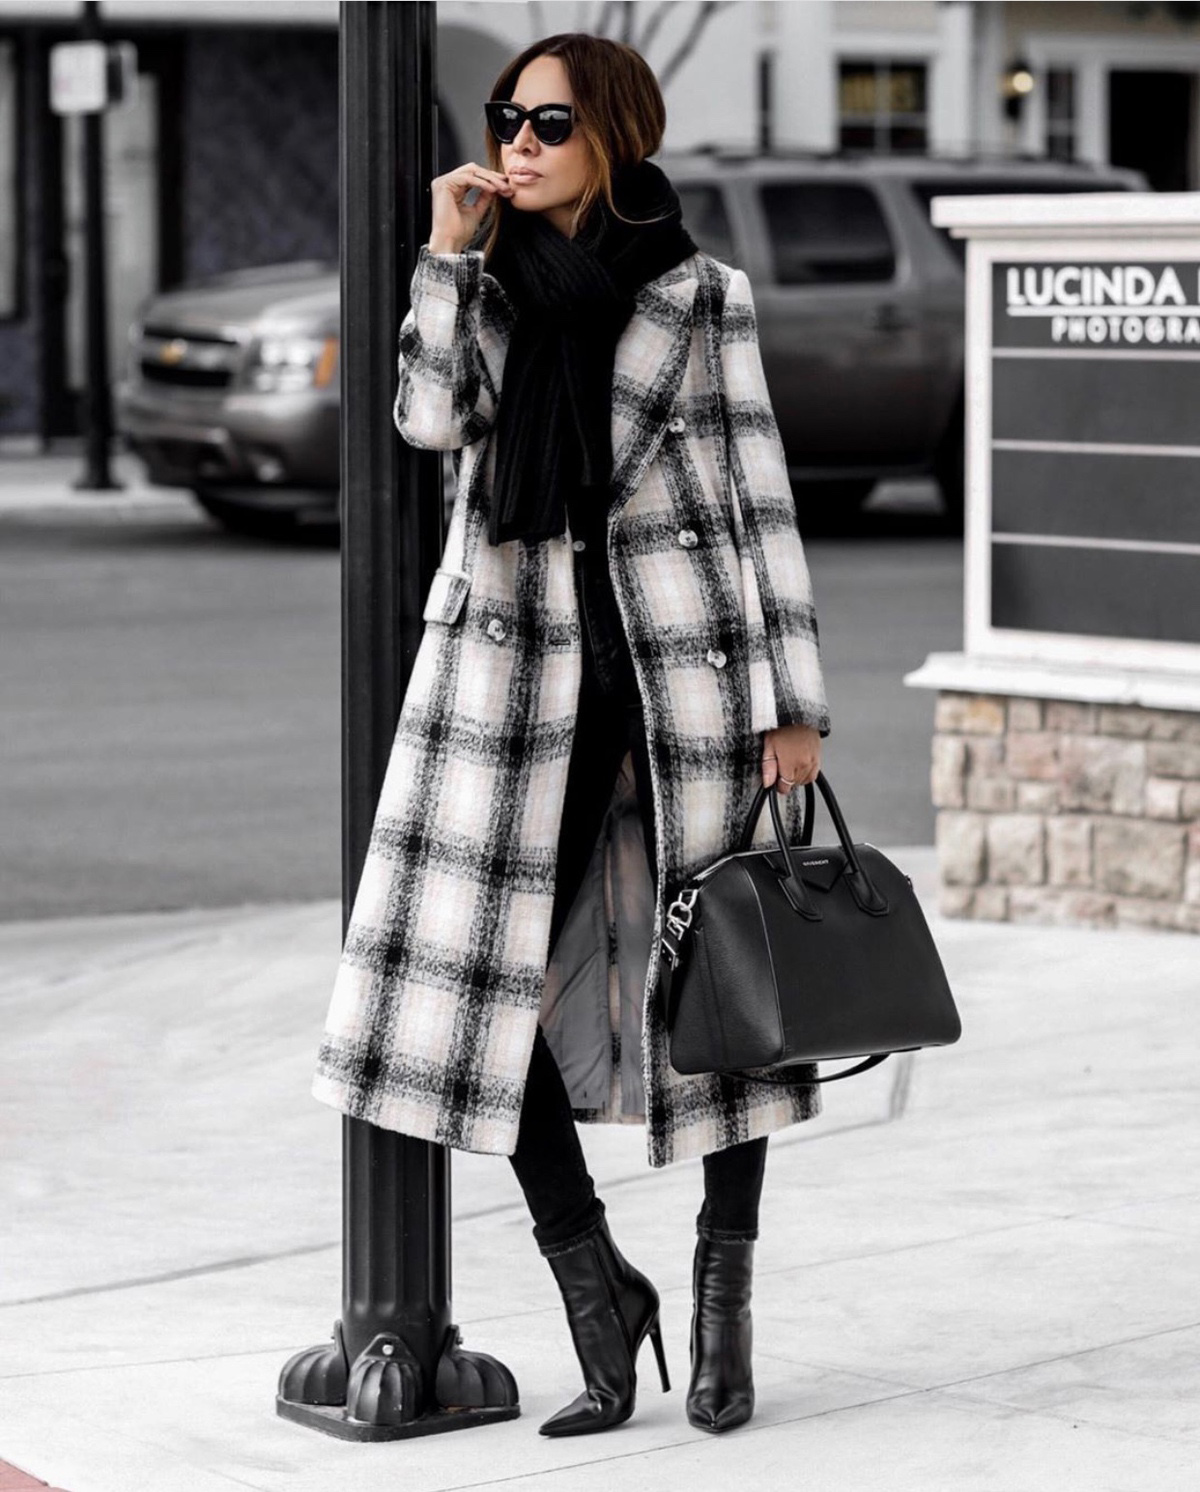 Coats Every Woman Should Own, topshop plaid coat, fall outfit inspiration by lolario style | lolariostyle.com